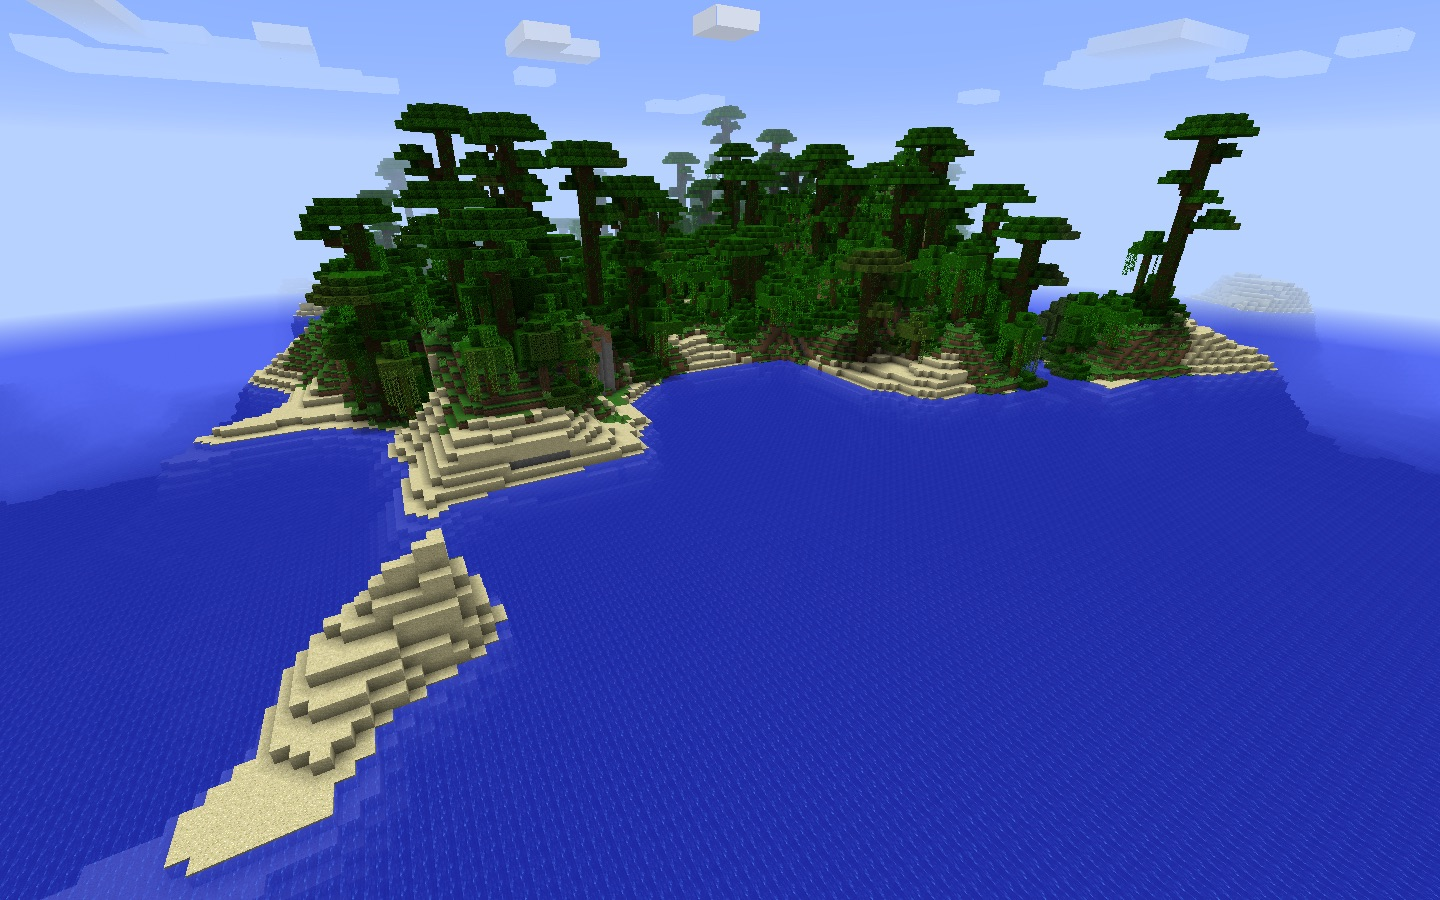 Tropical Jungle Spawn near Temple